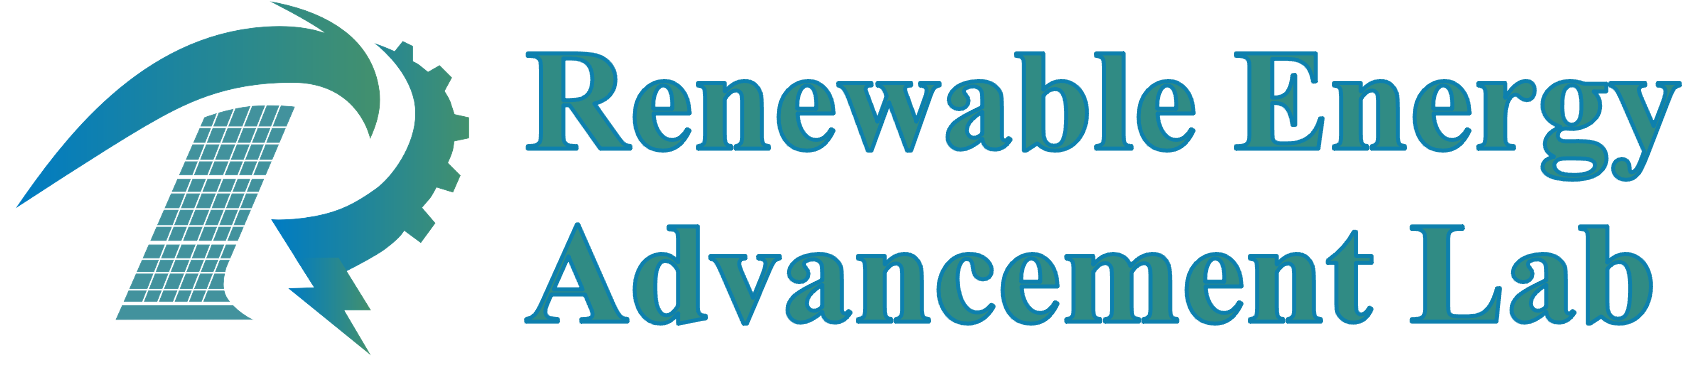 Renewable Energy Advancement Lab